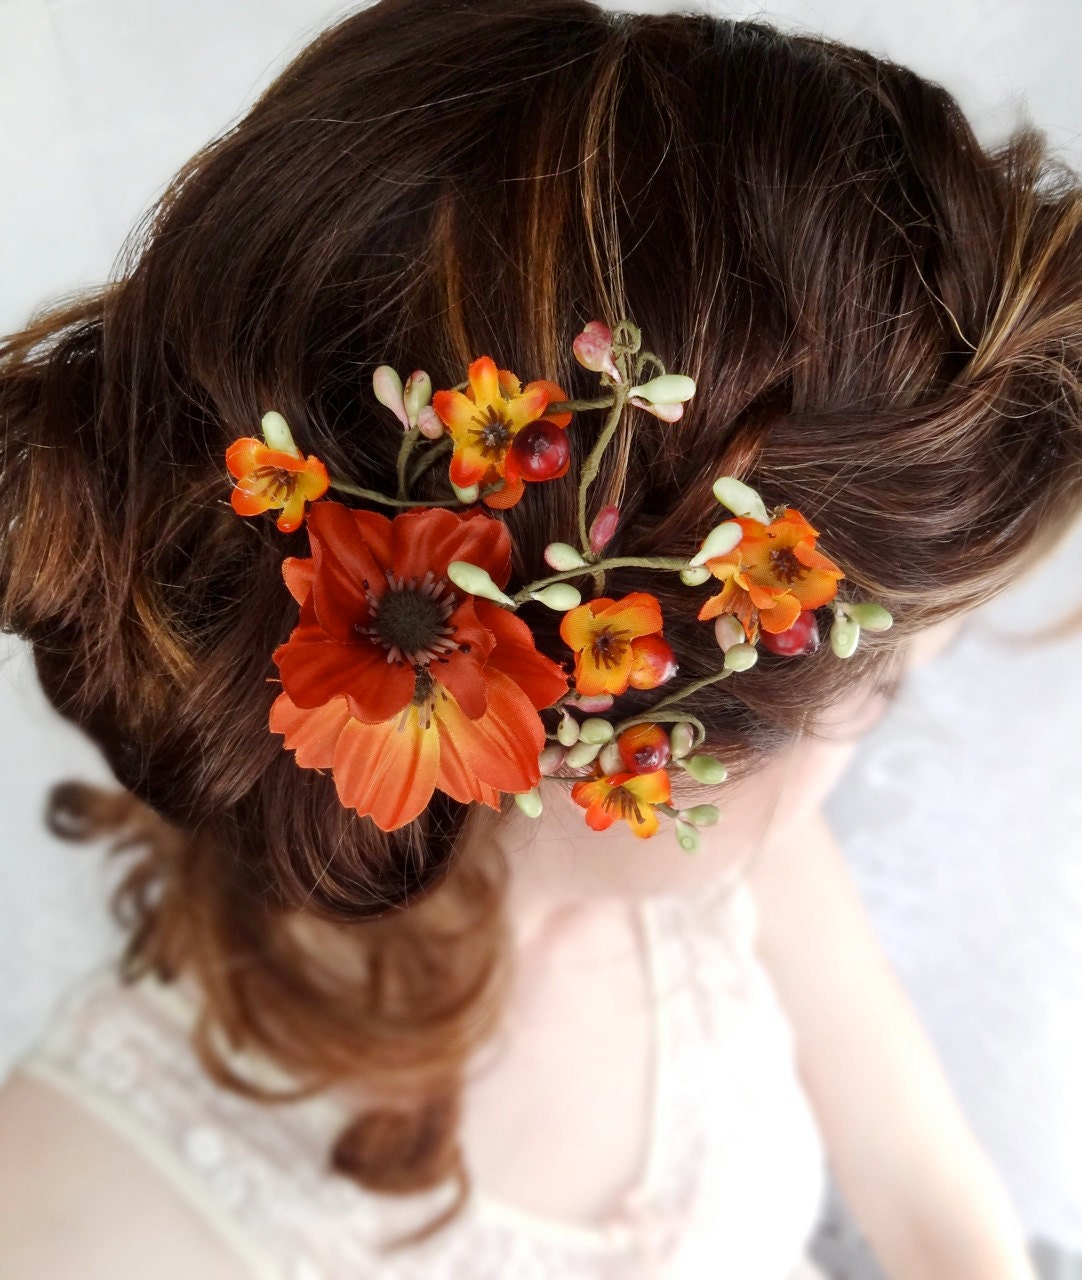 Flowers in hair for fall wedding? — The Knot